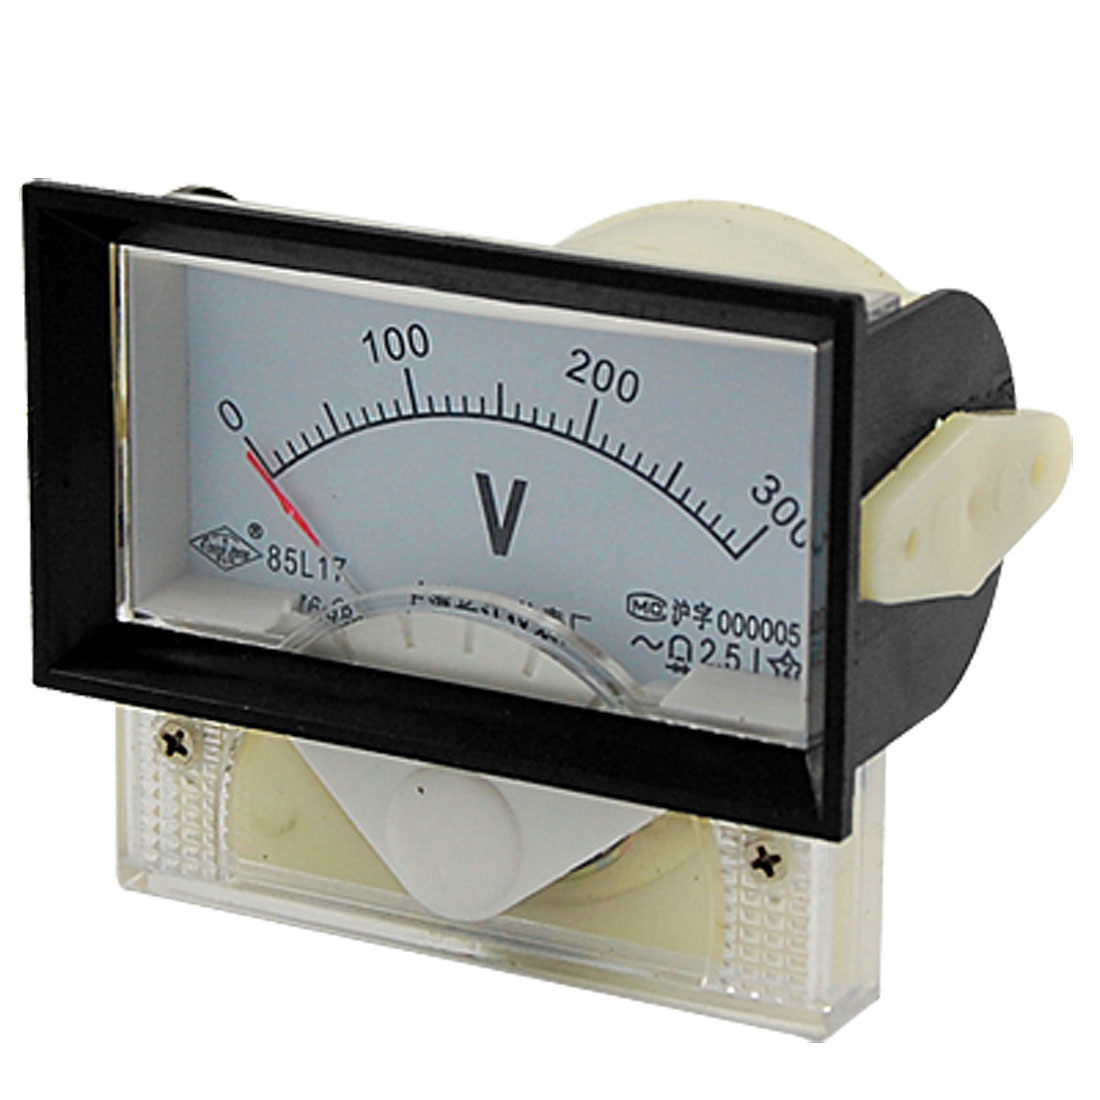 85L17 AC 0-300V Rectangle Analog Voltmeter Panel Meter Gauge